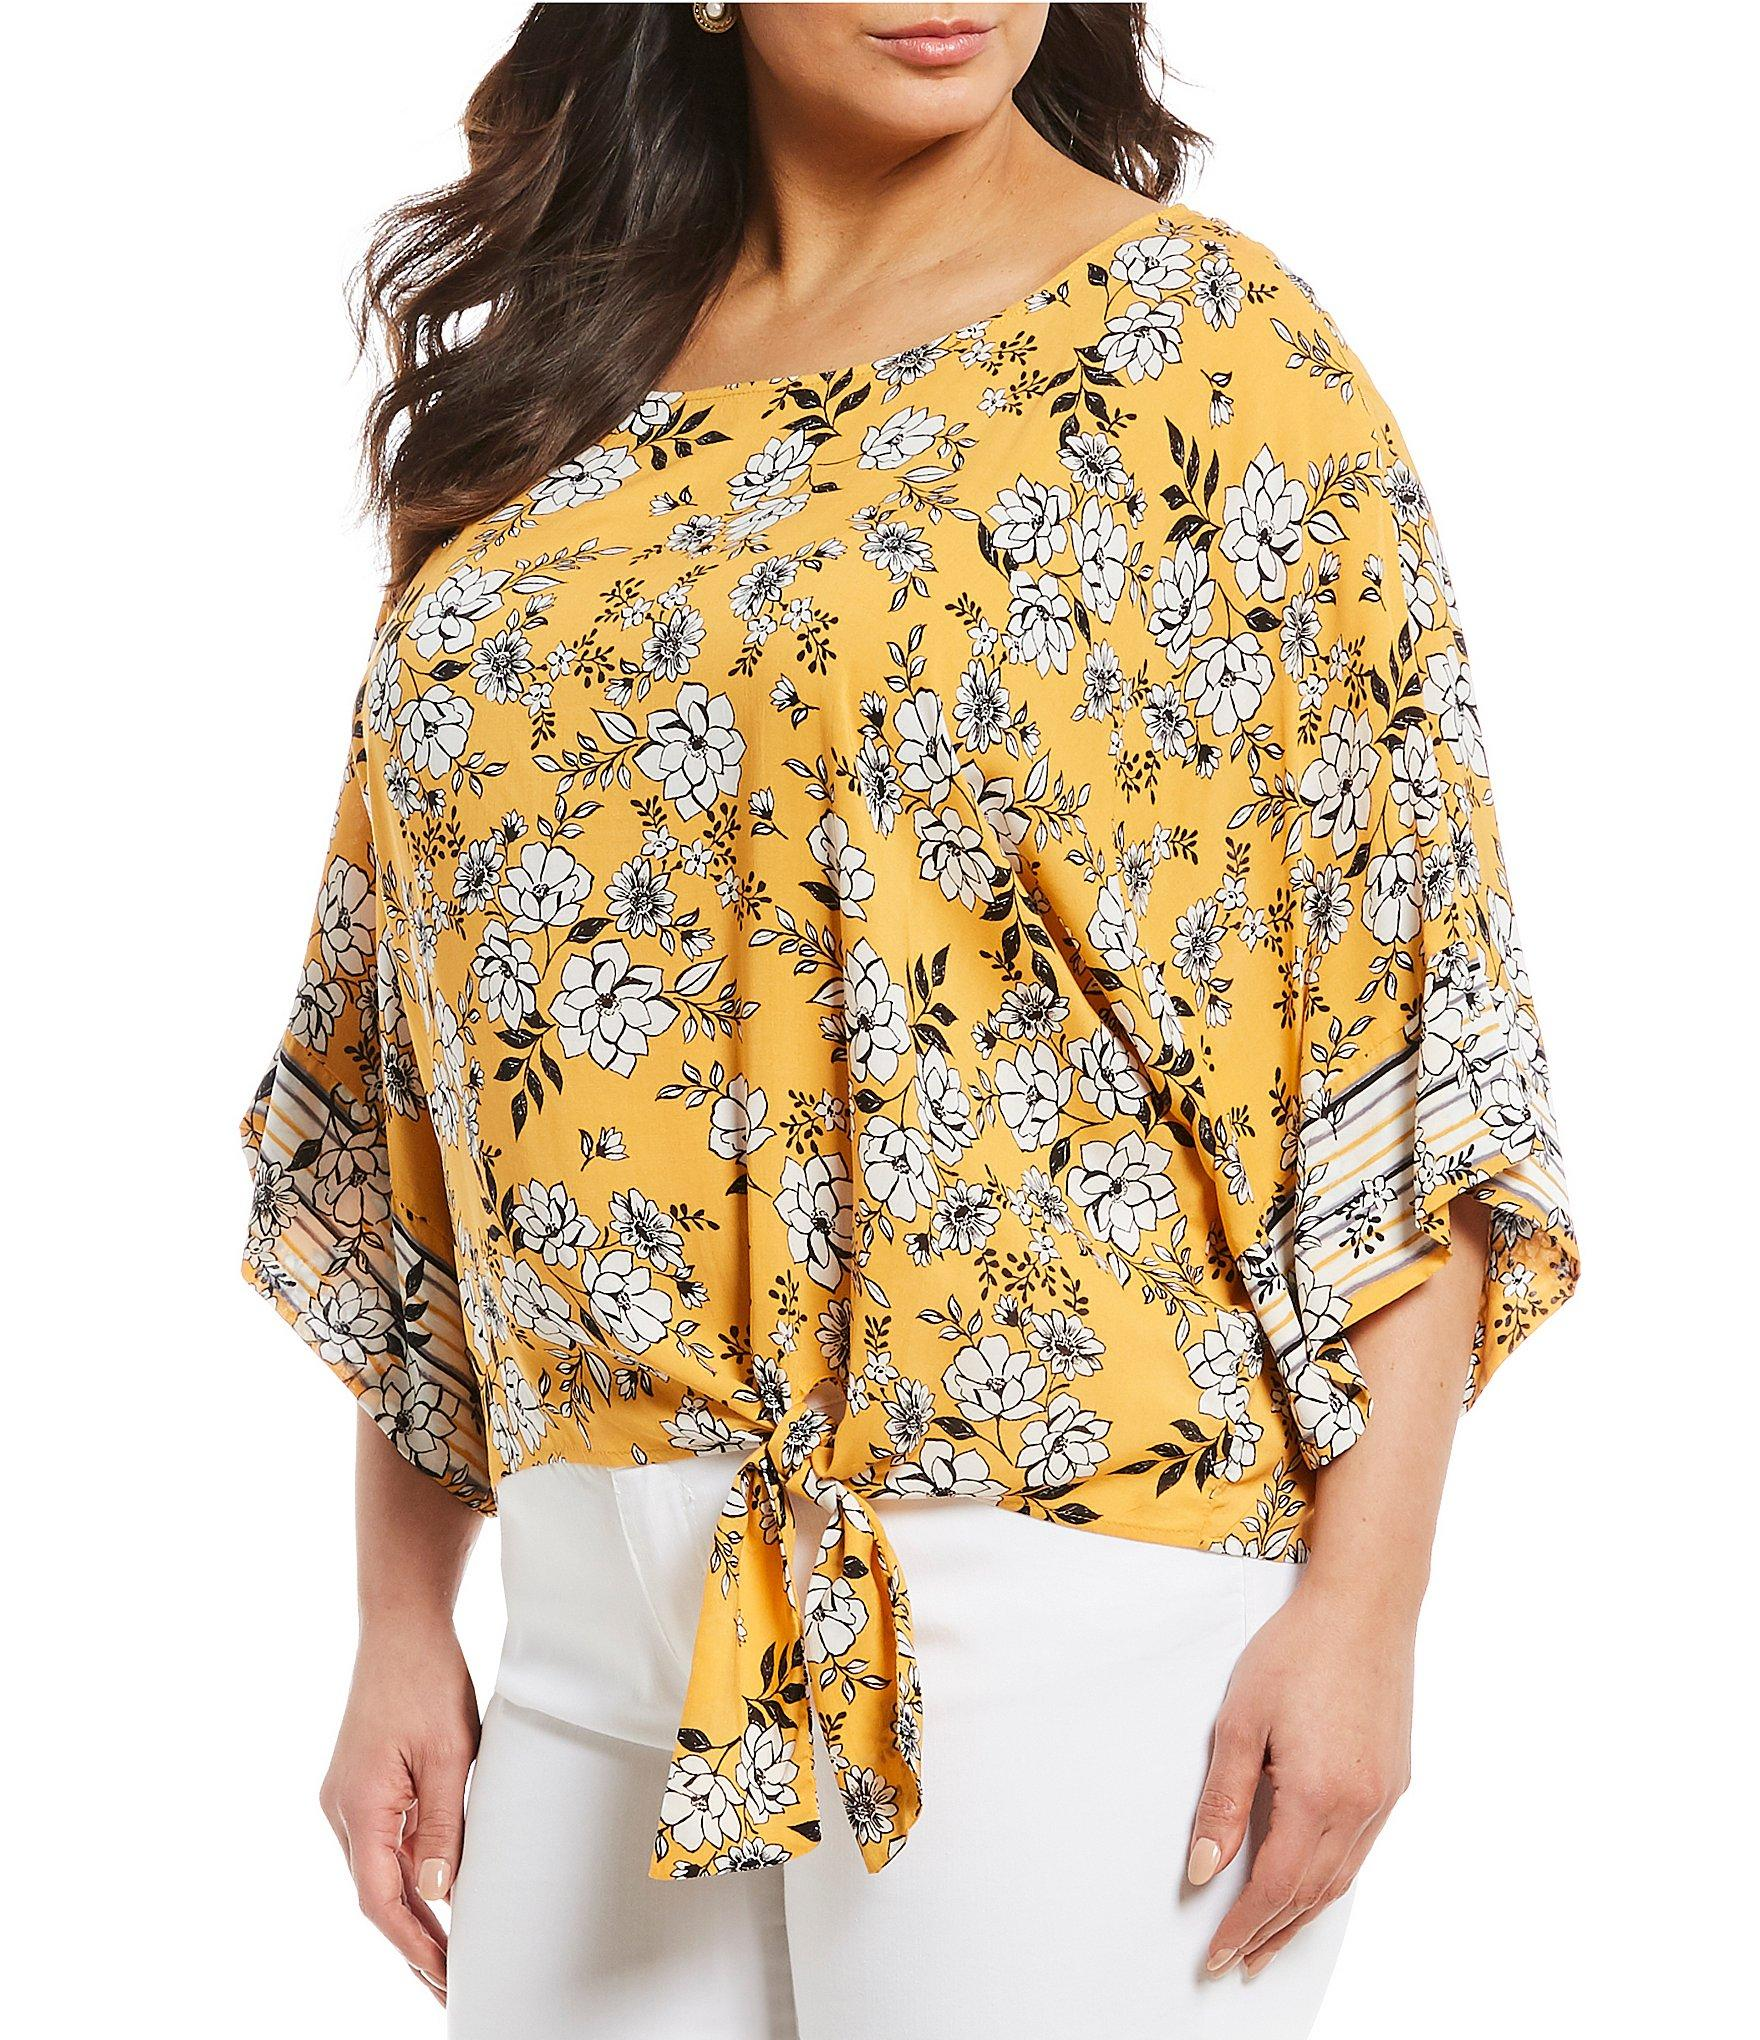 ad6c853c108 Lyst - Democracy Plus Size Floral Print 3 4 Sleeve Side Tie Knot Top